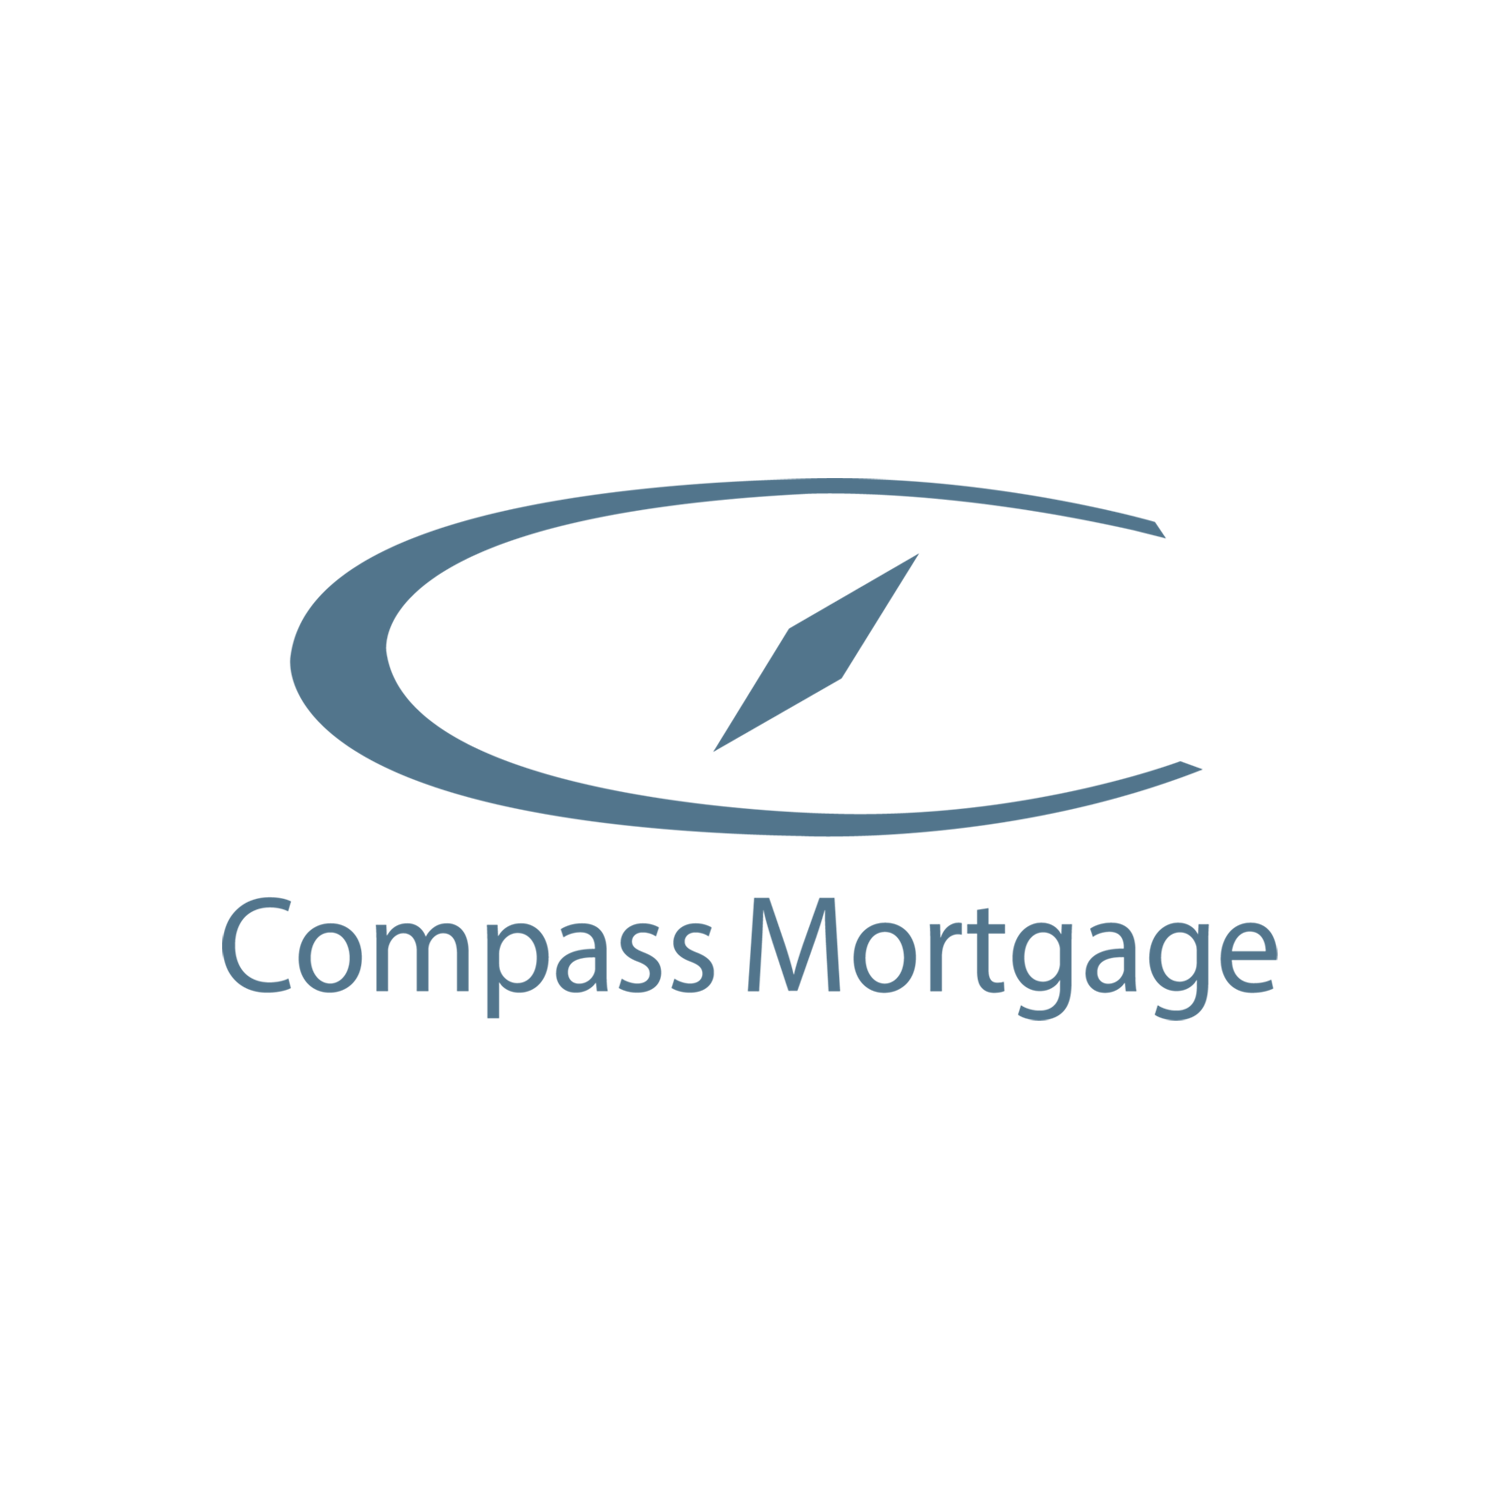 Compass Mortgage